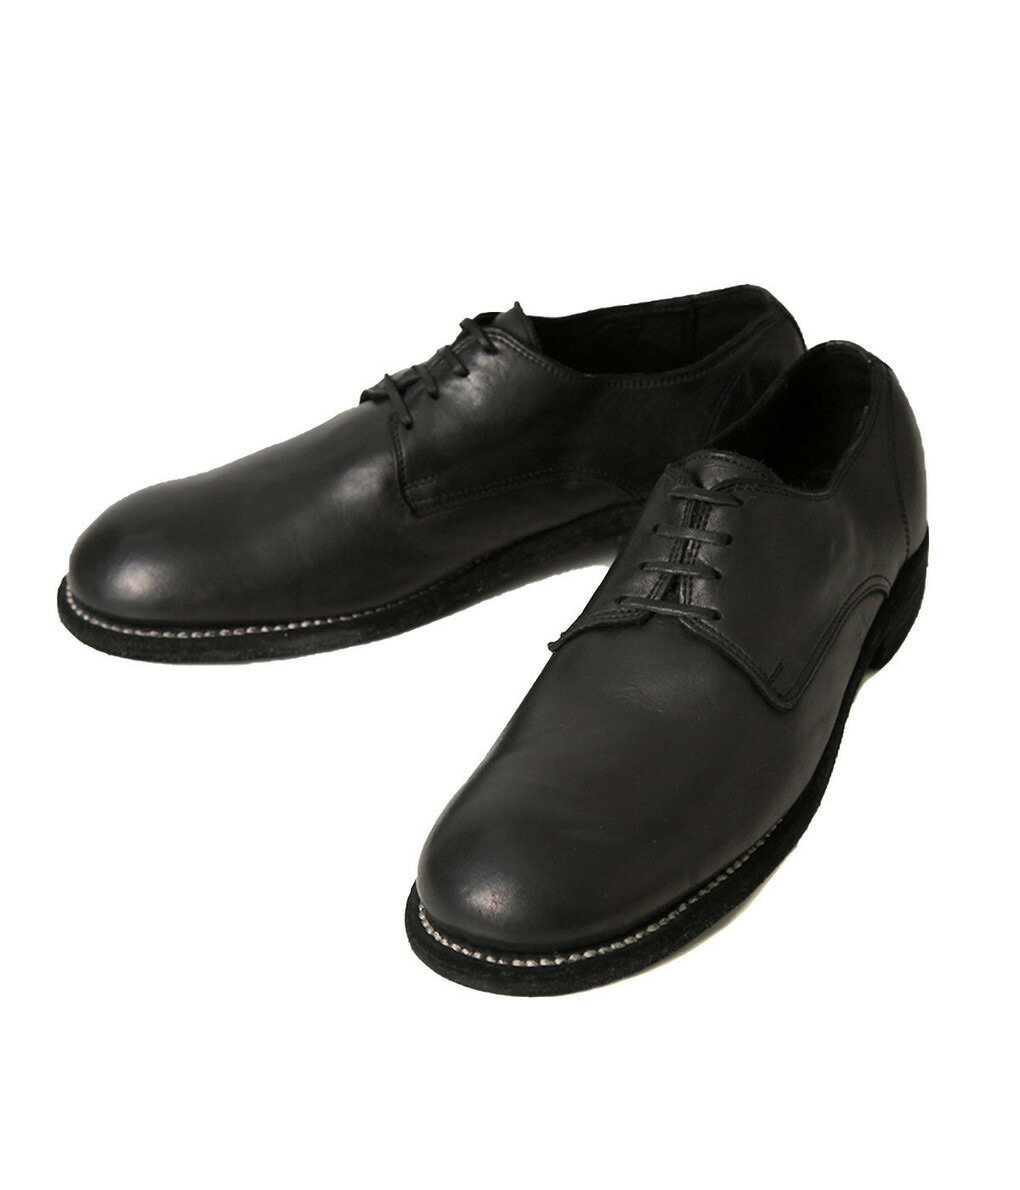 メンズ靴, その他 GUIDI CLASSIC DERBY SHOES 992-M-HORSE-bjb BJB